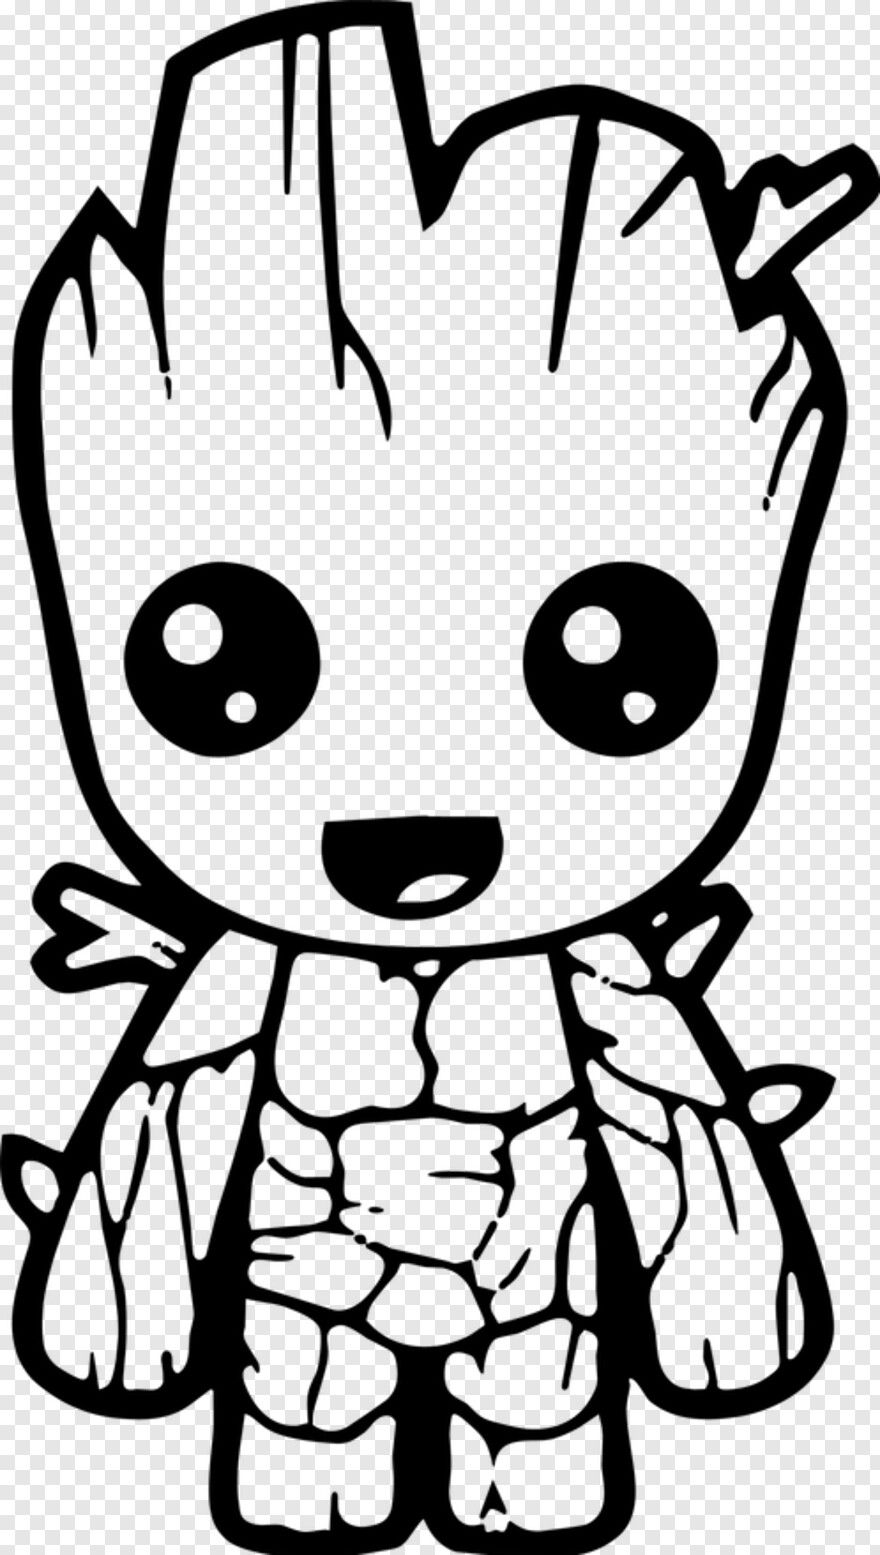 Baby Groot Cute Avengers Coloring Pages Hd Png Download In 2020 Avengers Coloring Avengers Coloring Pages Marvel Coloring